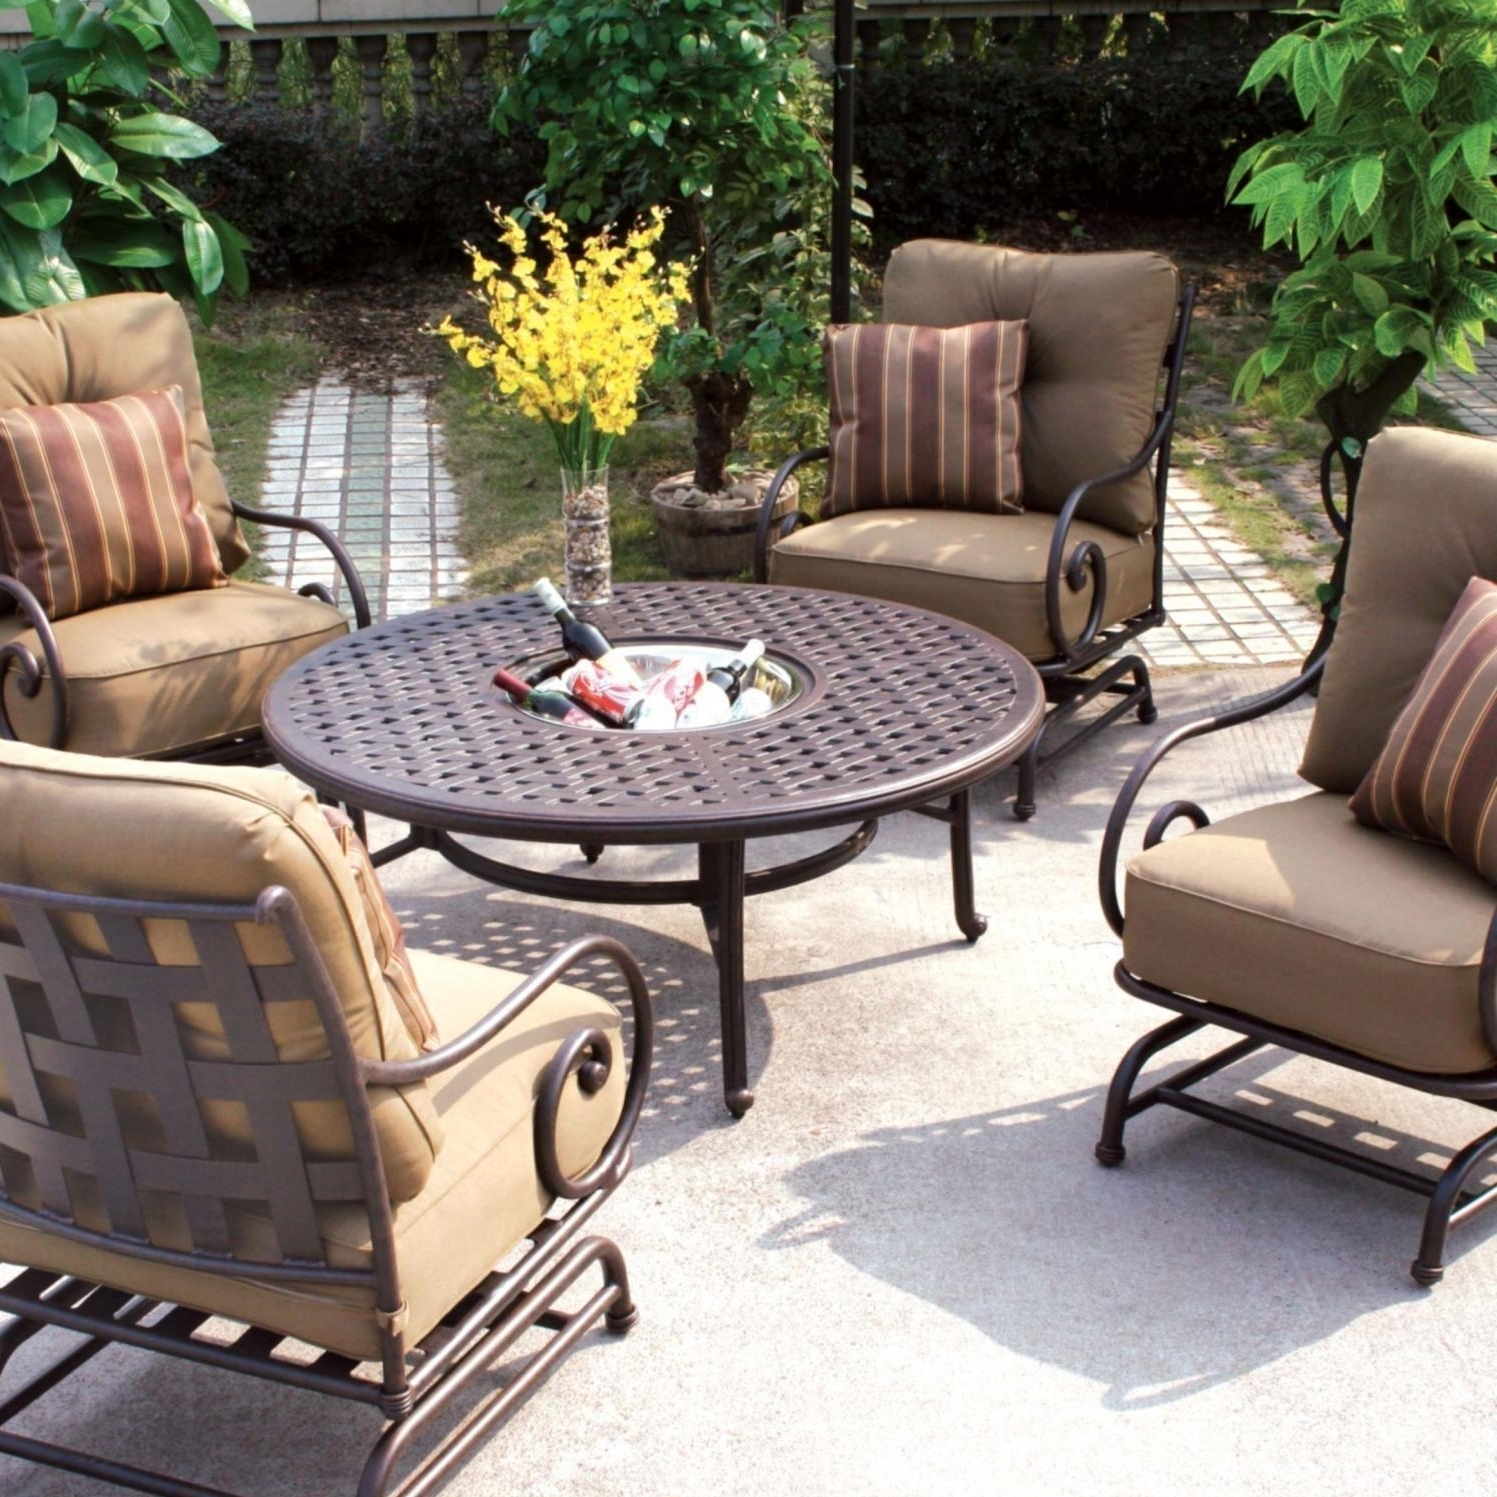 Patio : Formidable Searsr Patio Furniture Pictures Concept Clearance Within Favorite Sears Patio Furniture Conversation Sets (View 8 of 15)